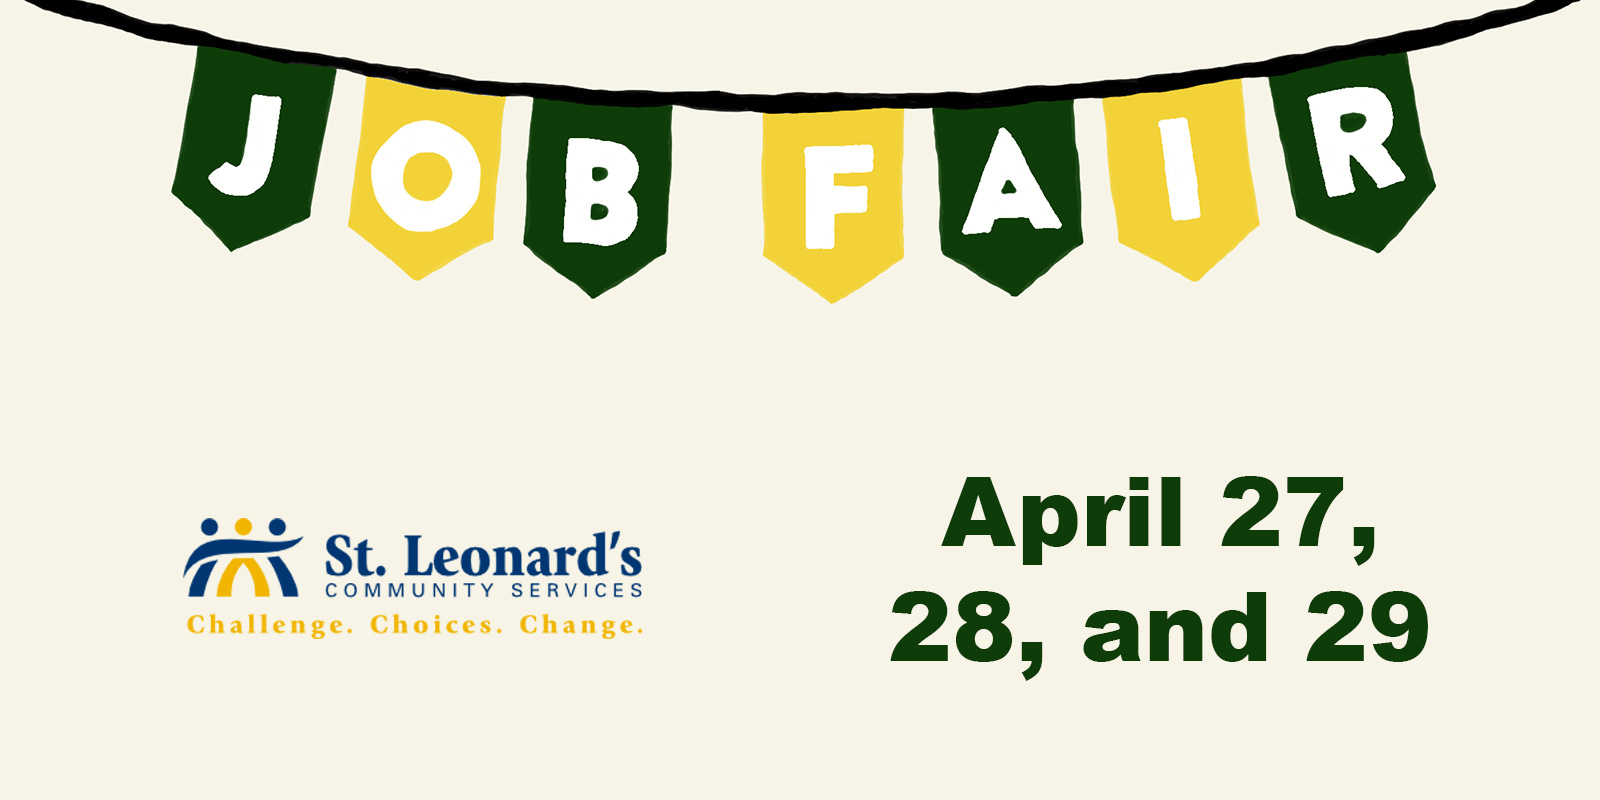 Job Fair - April 27, 28, and 29